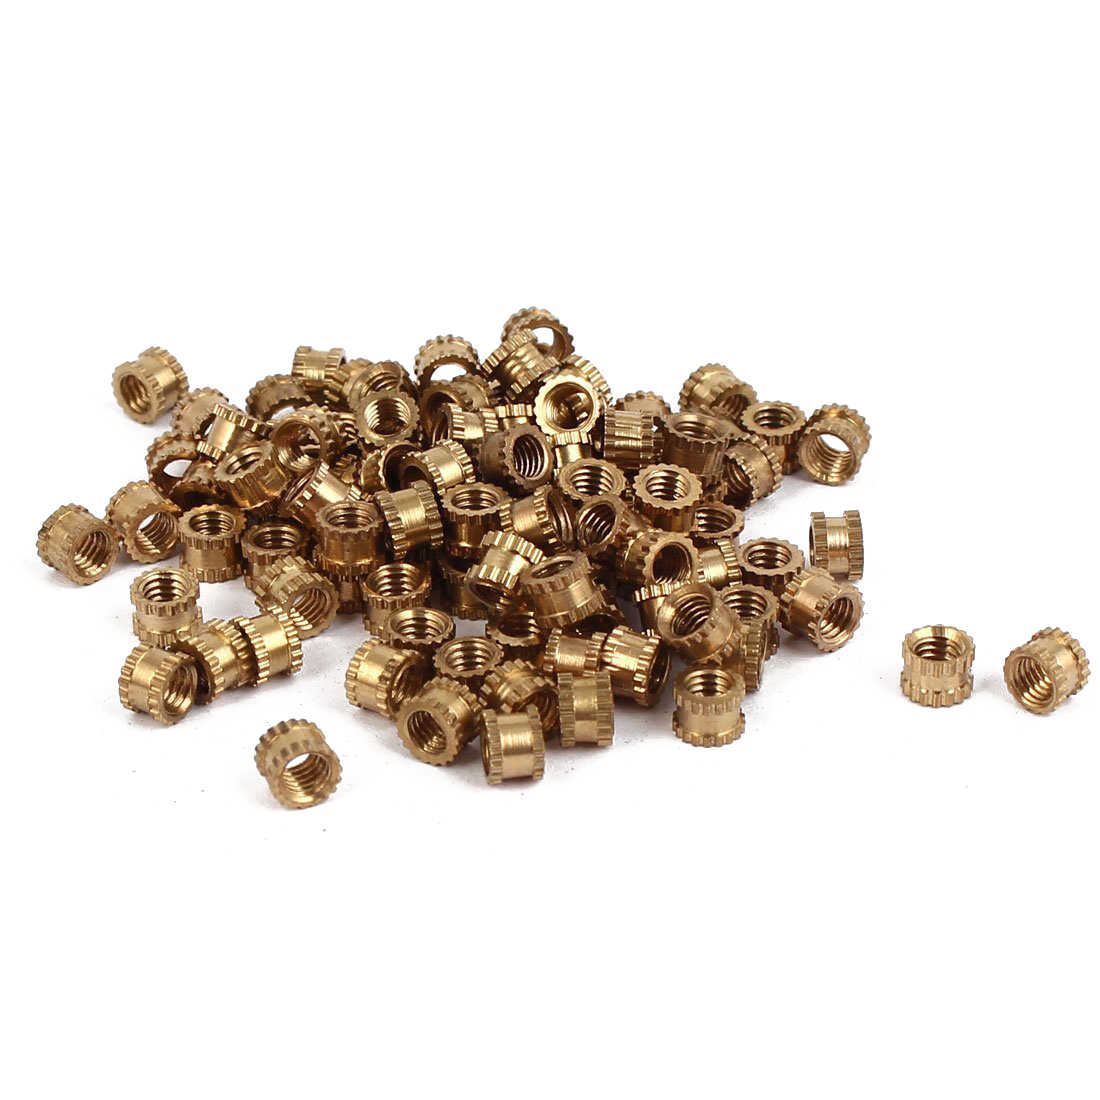 Hot sale M3 x 3mm Female Thread Brass Knurled Threaded Insert Embedment Nuts 100PCS